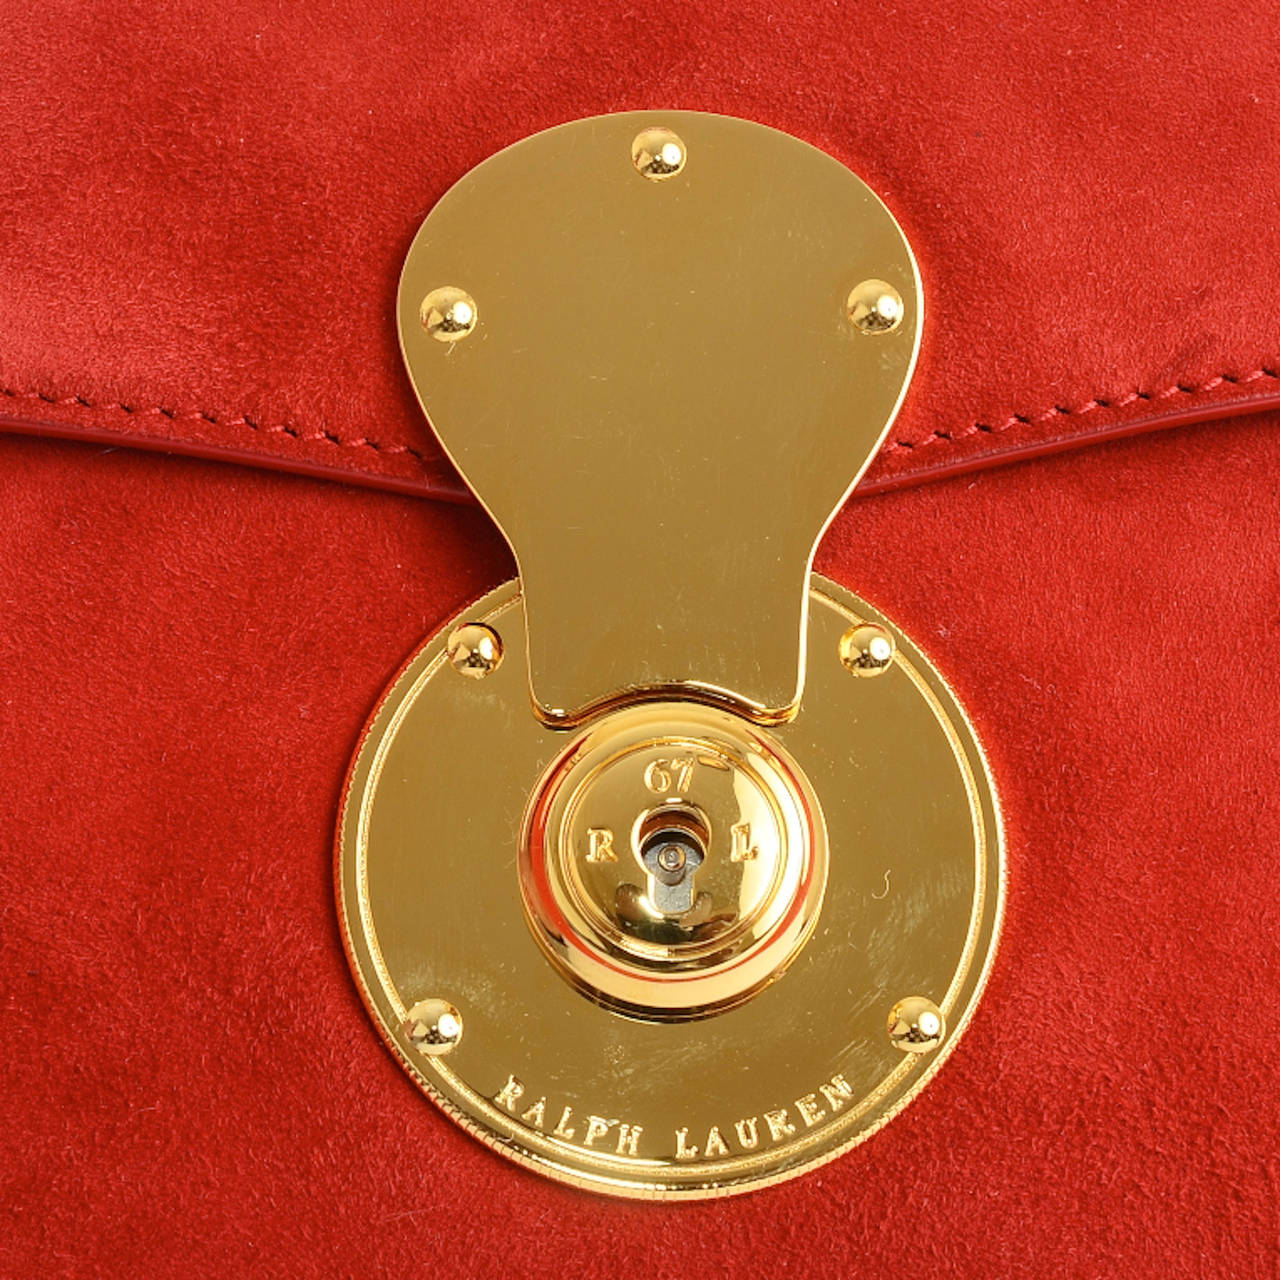 Ralph Lauren Red Suede Ricky Chain Bag For Sale 1